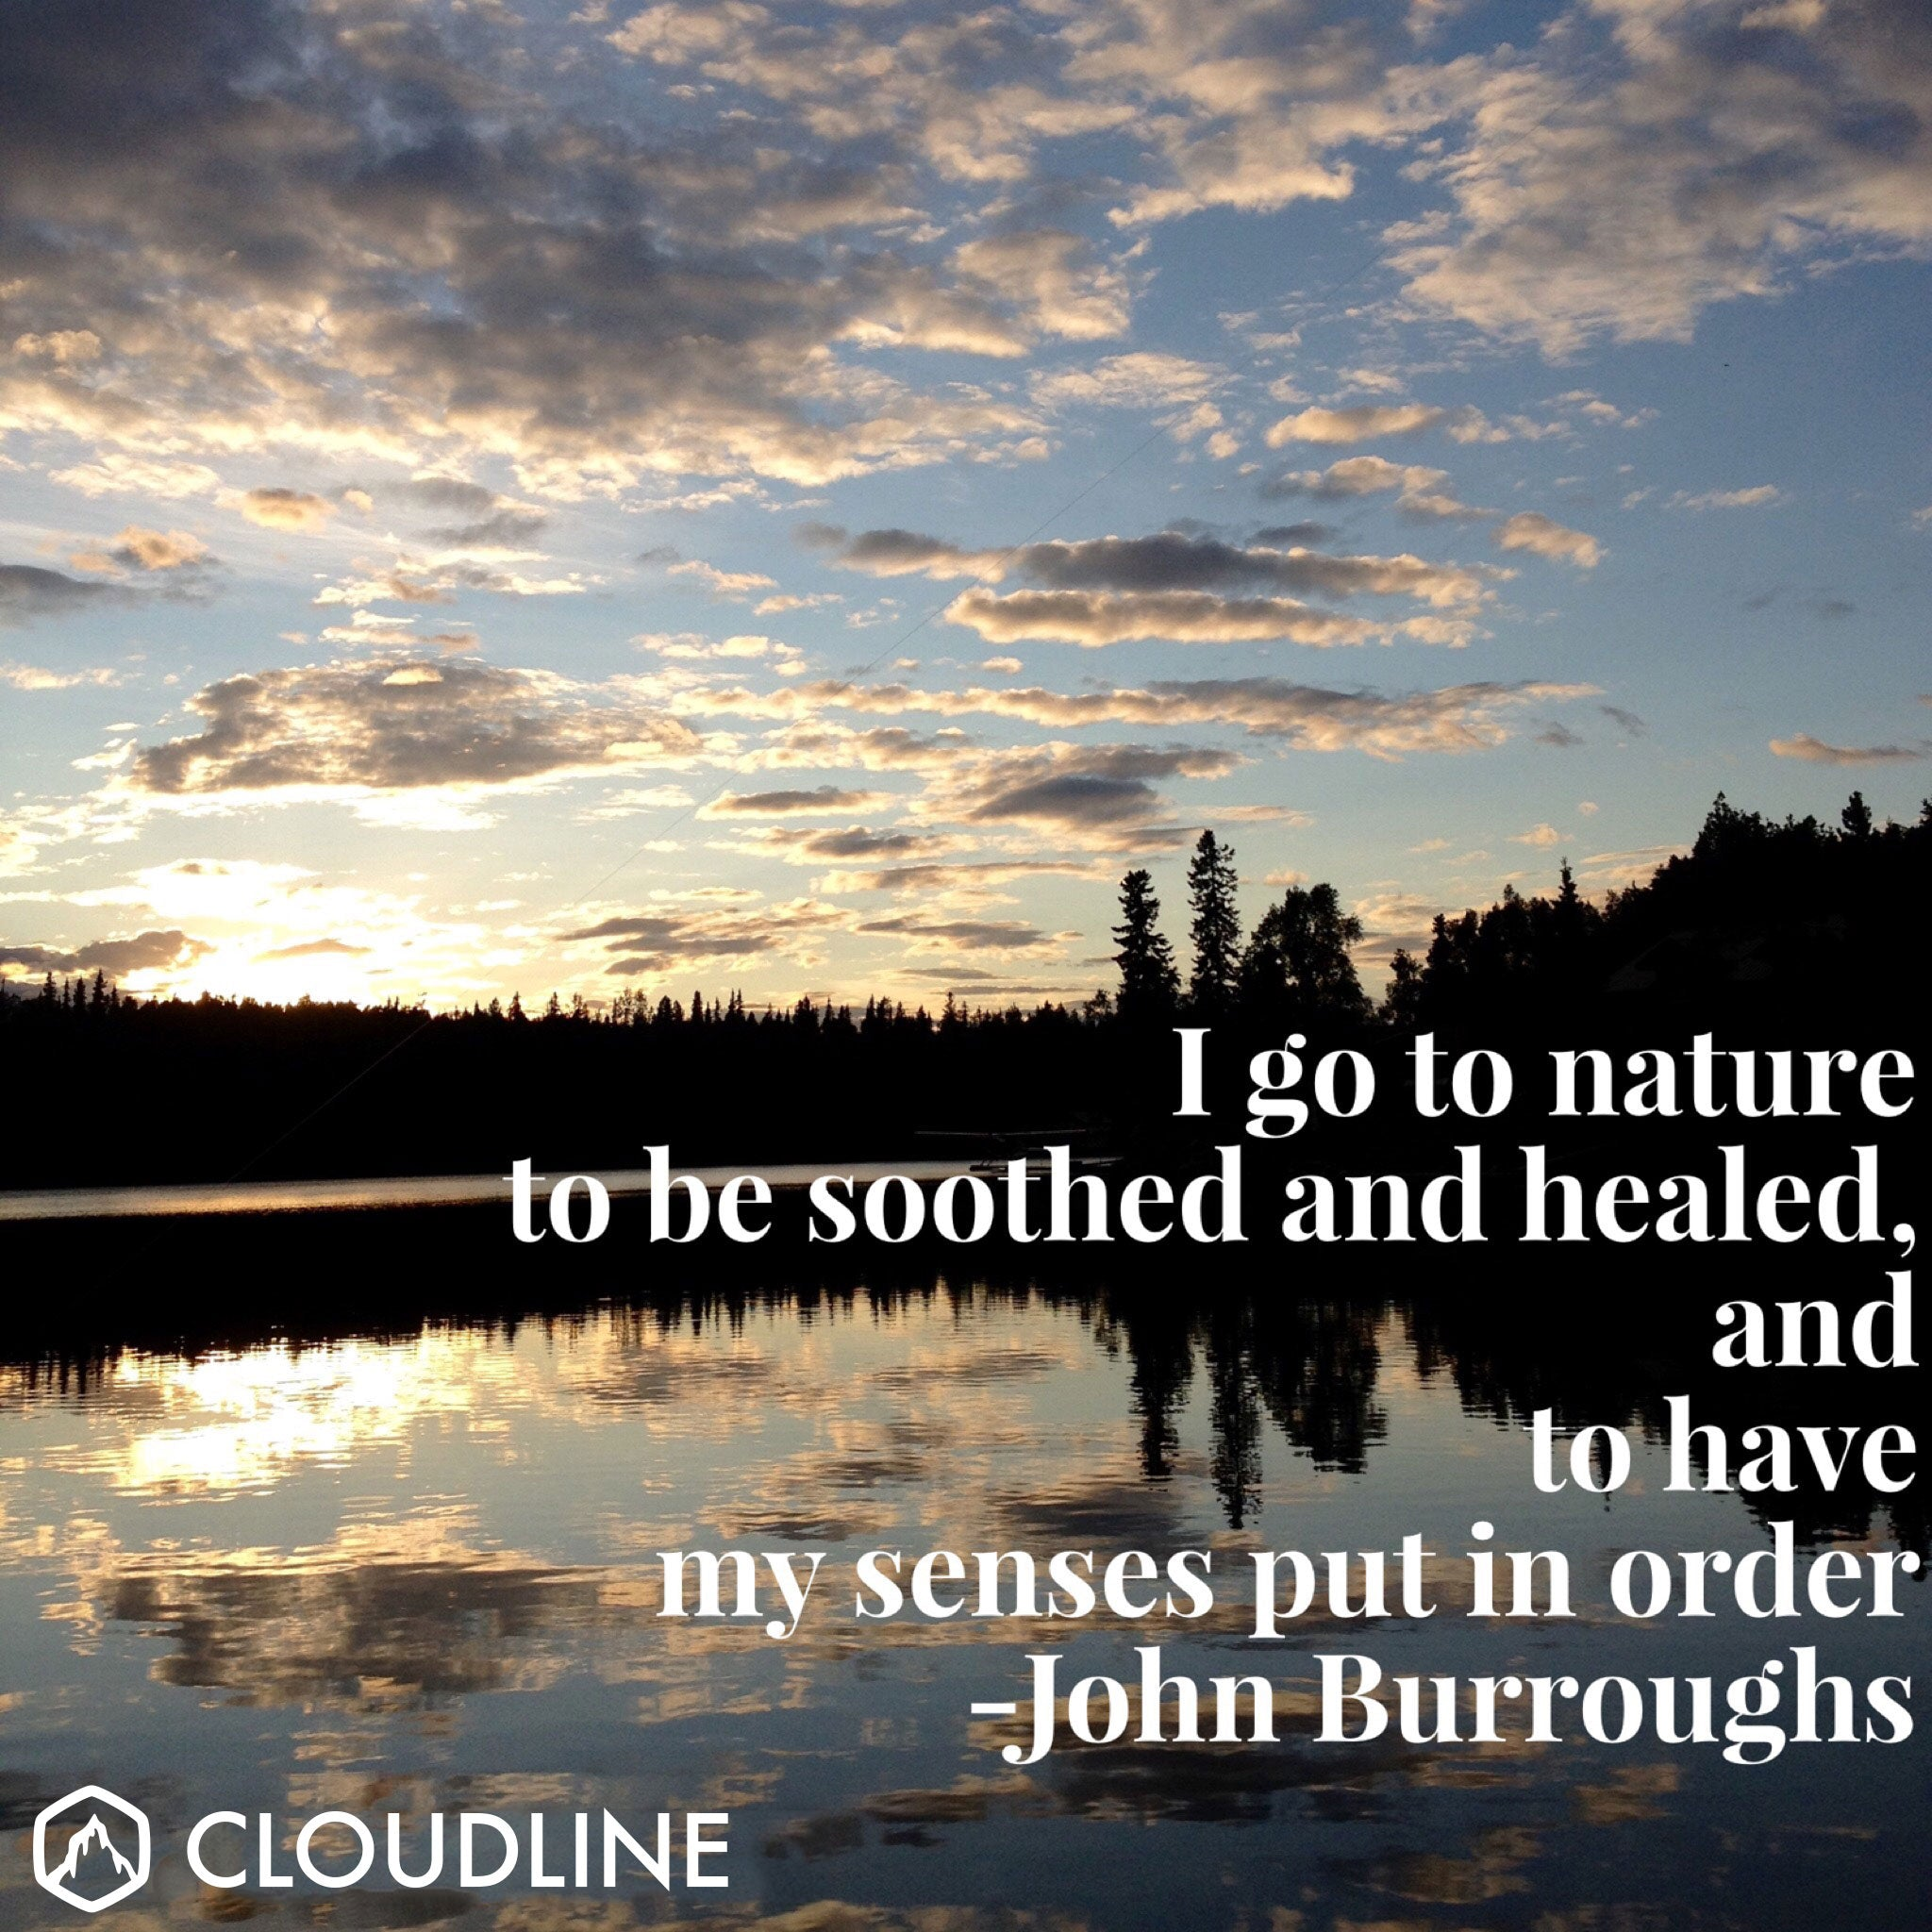 Get Inspired to Hike More with These Outdoor Quotes - Burroughs